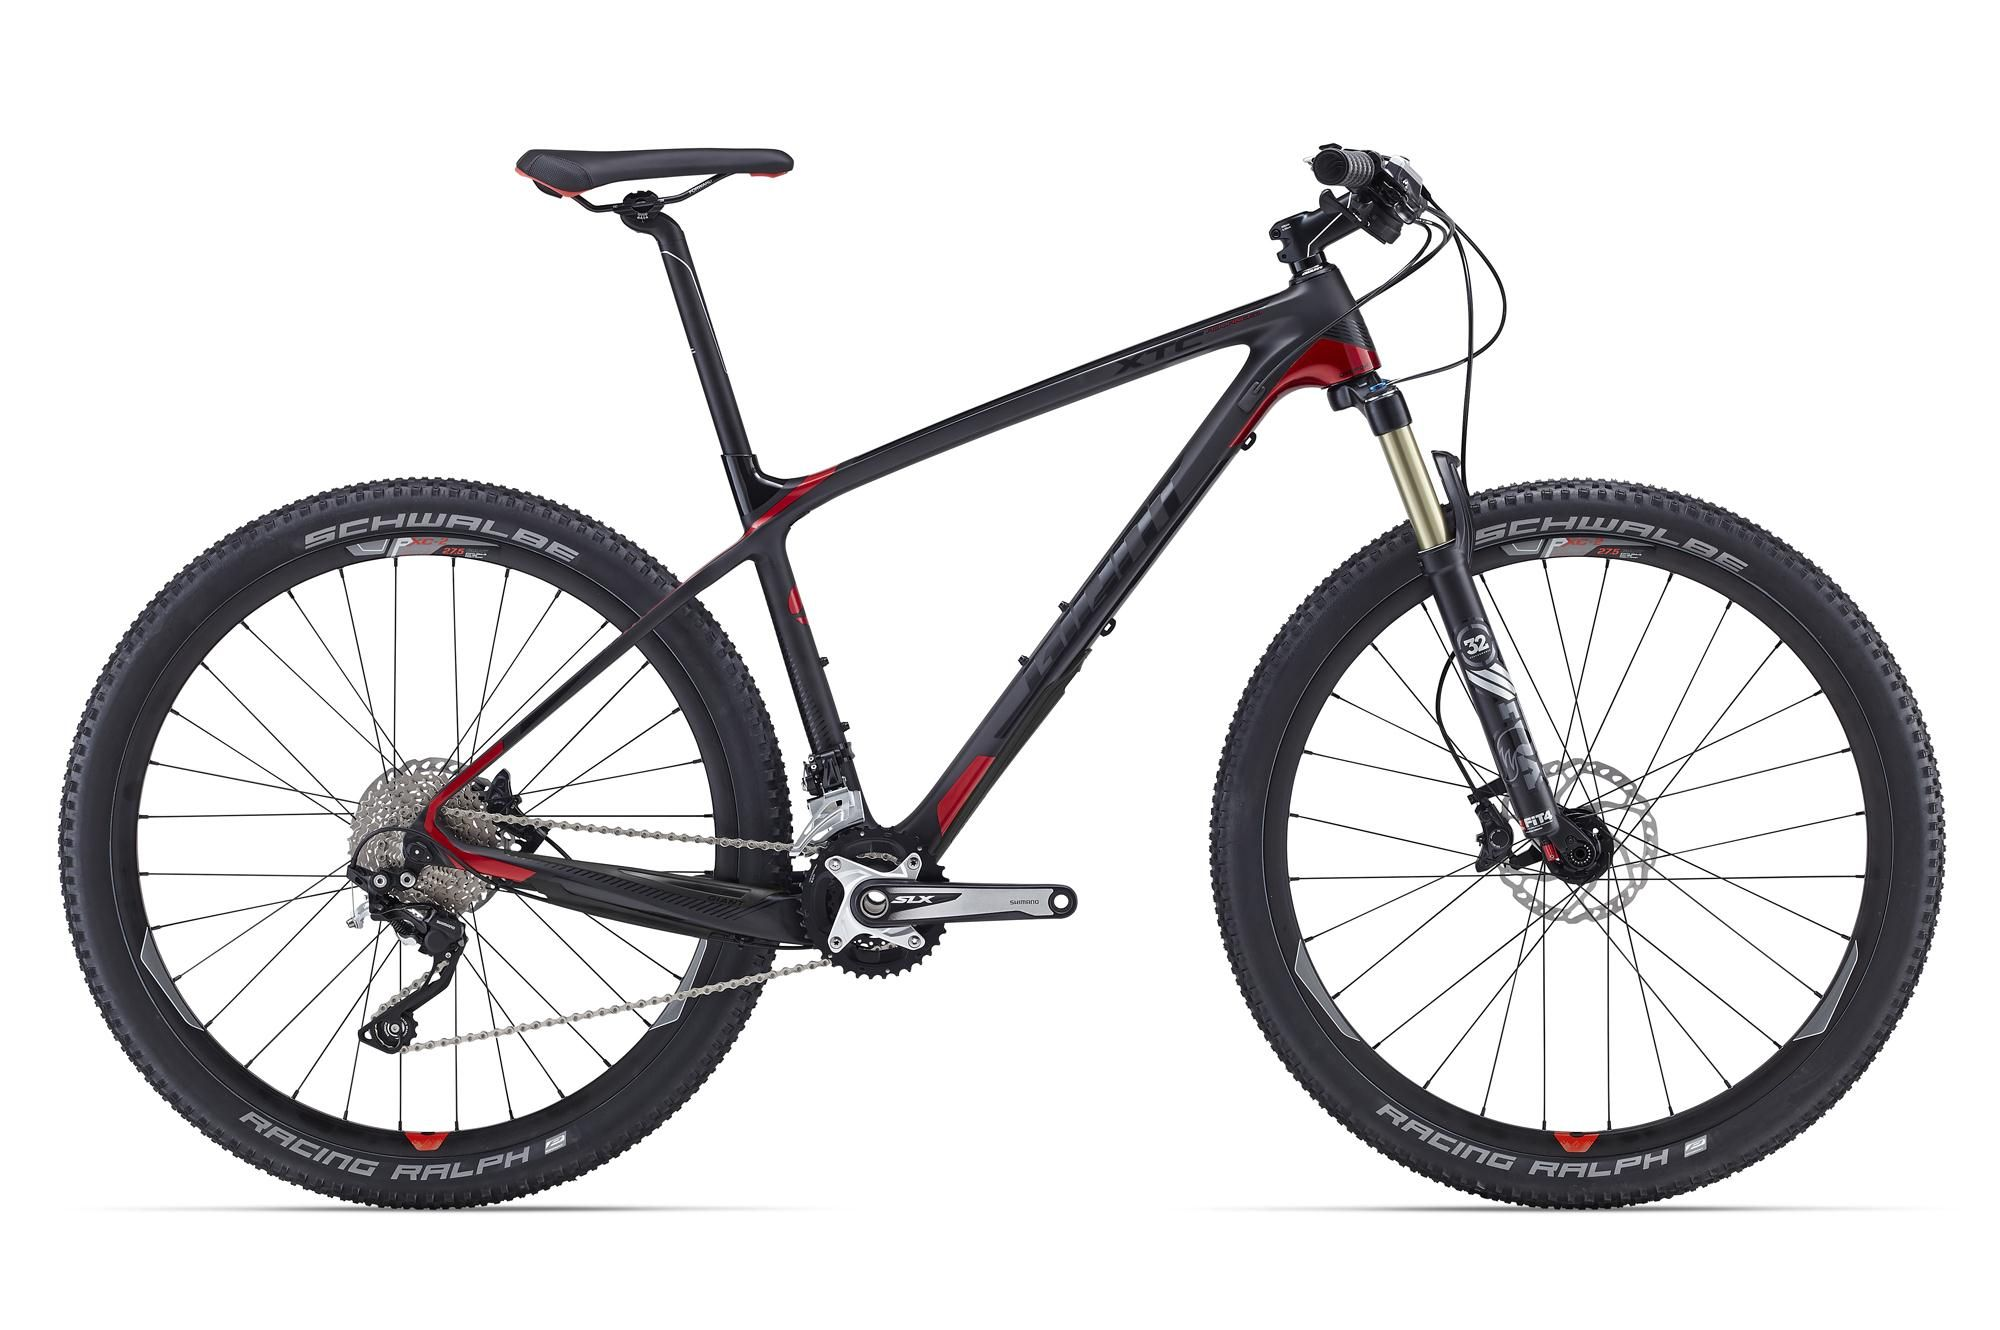 Велосипед Giant XtC Advanced 27.5 2 2016 giant xtc advanced 27 5 2 2016